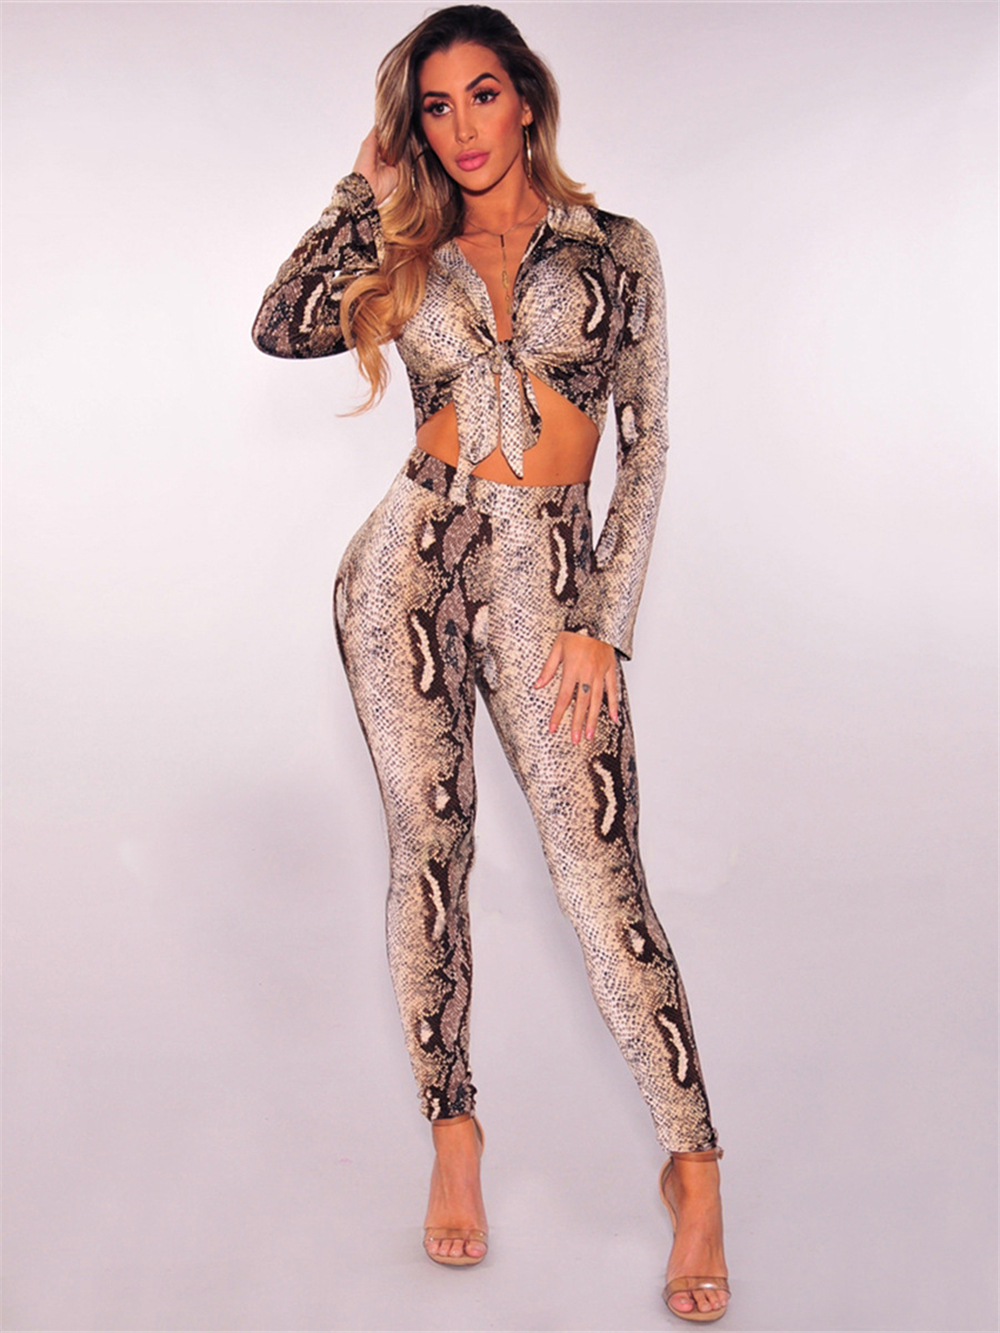 2018 New Summer Women Bandage Set Leopard Printed Top amp Jumpsuit 2 Two Pieces Set Evening Party Club Women Set in Women 39 s Sets from Women 39 s Clothing